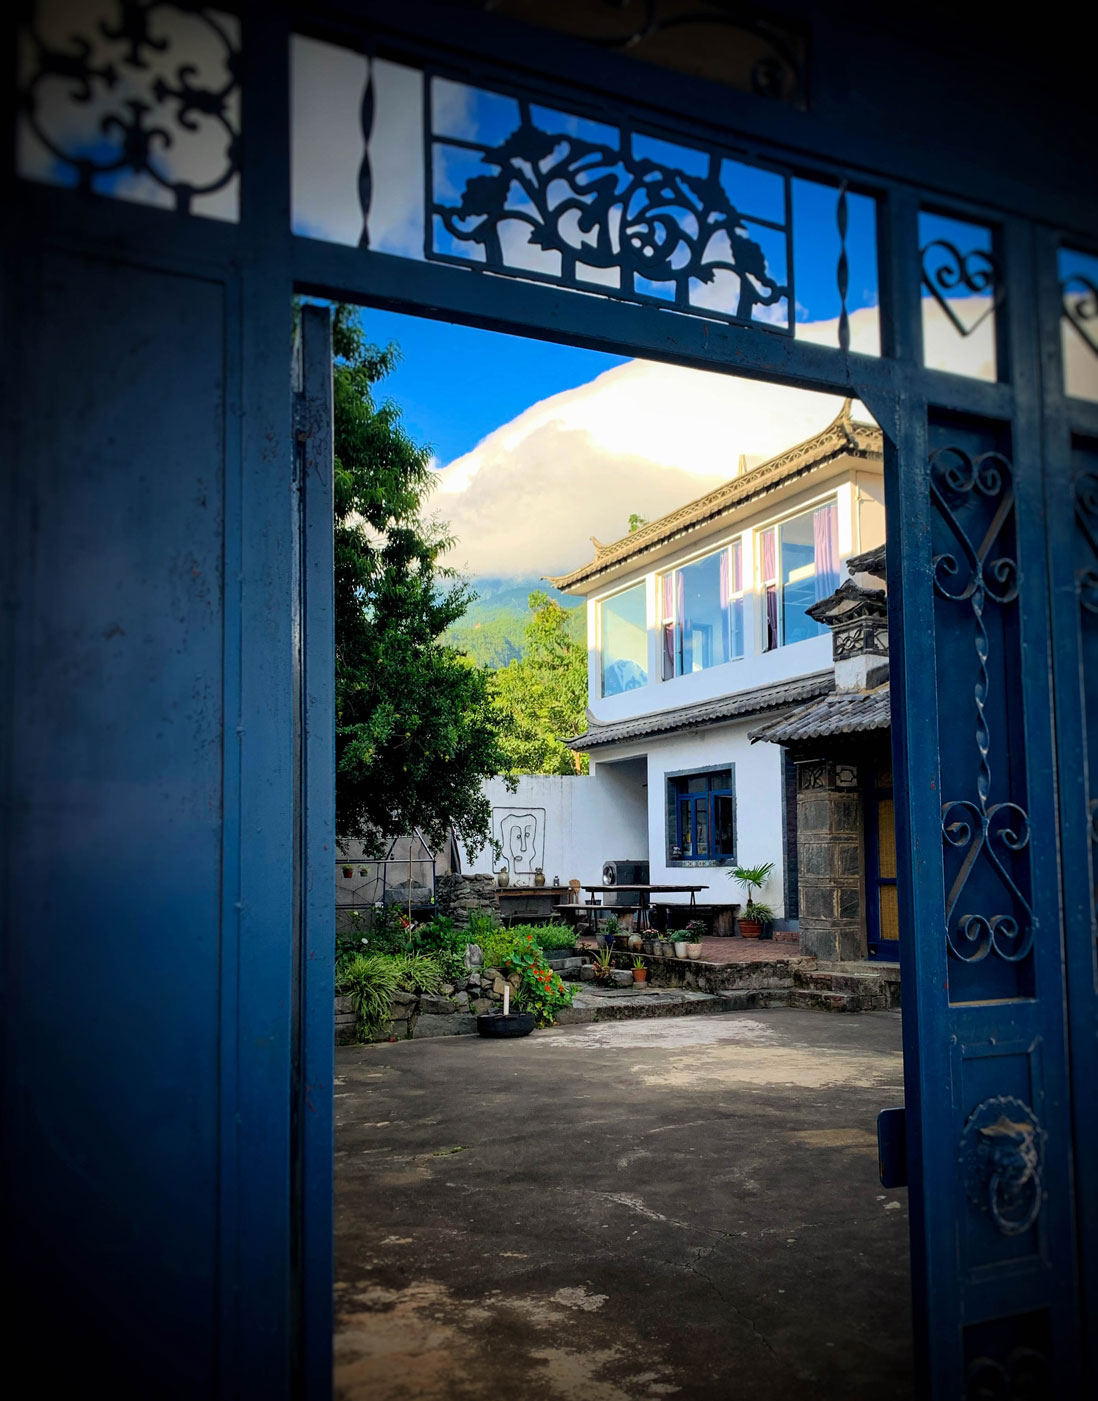 The outside of Limay Loo's place.